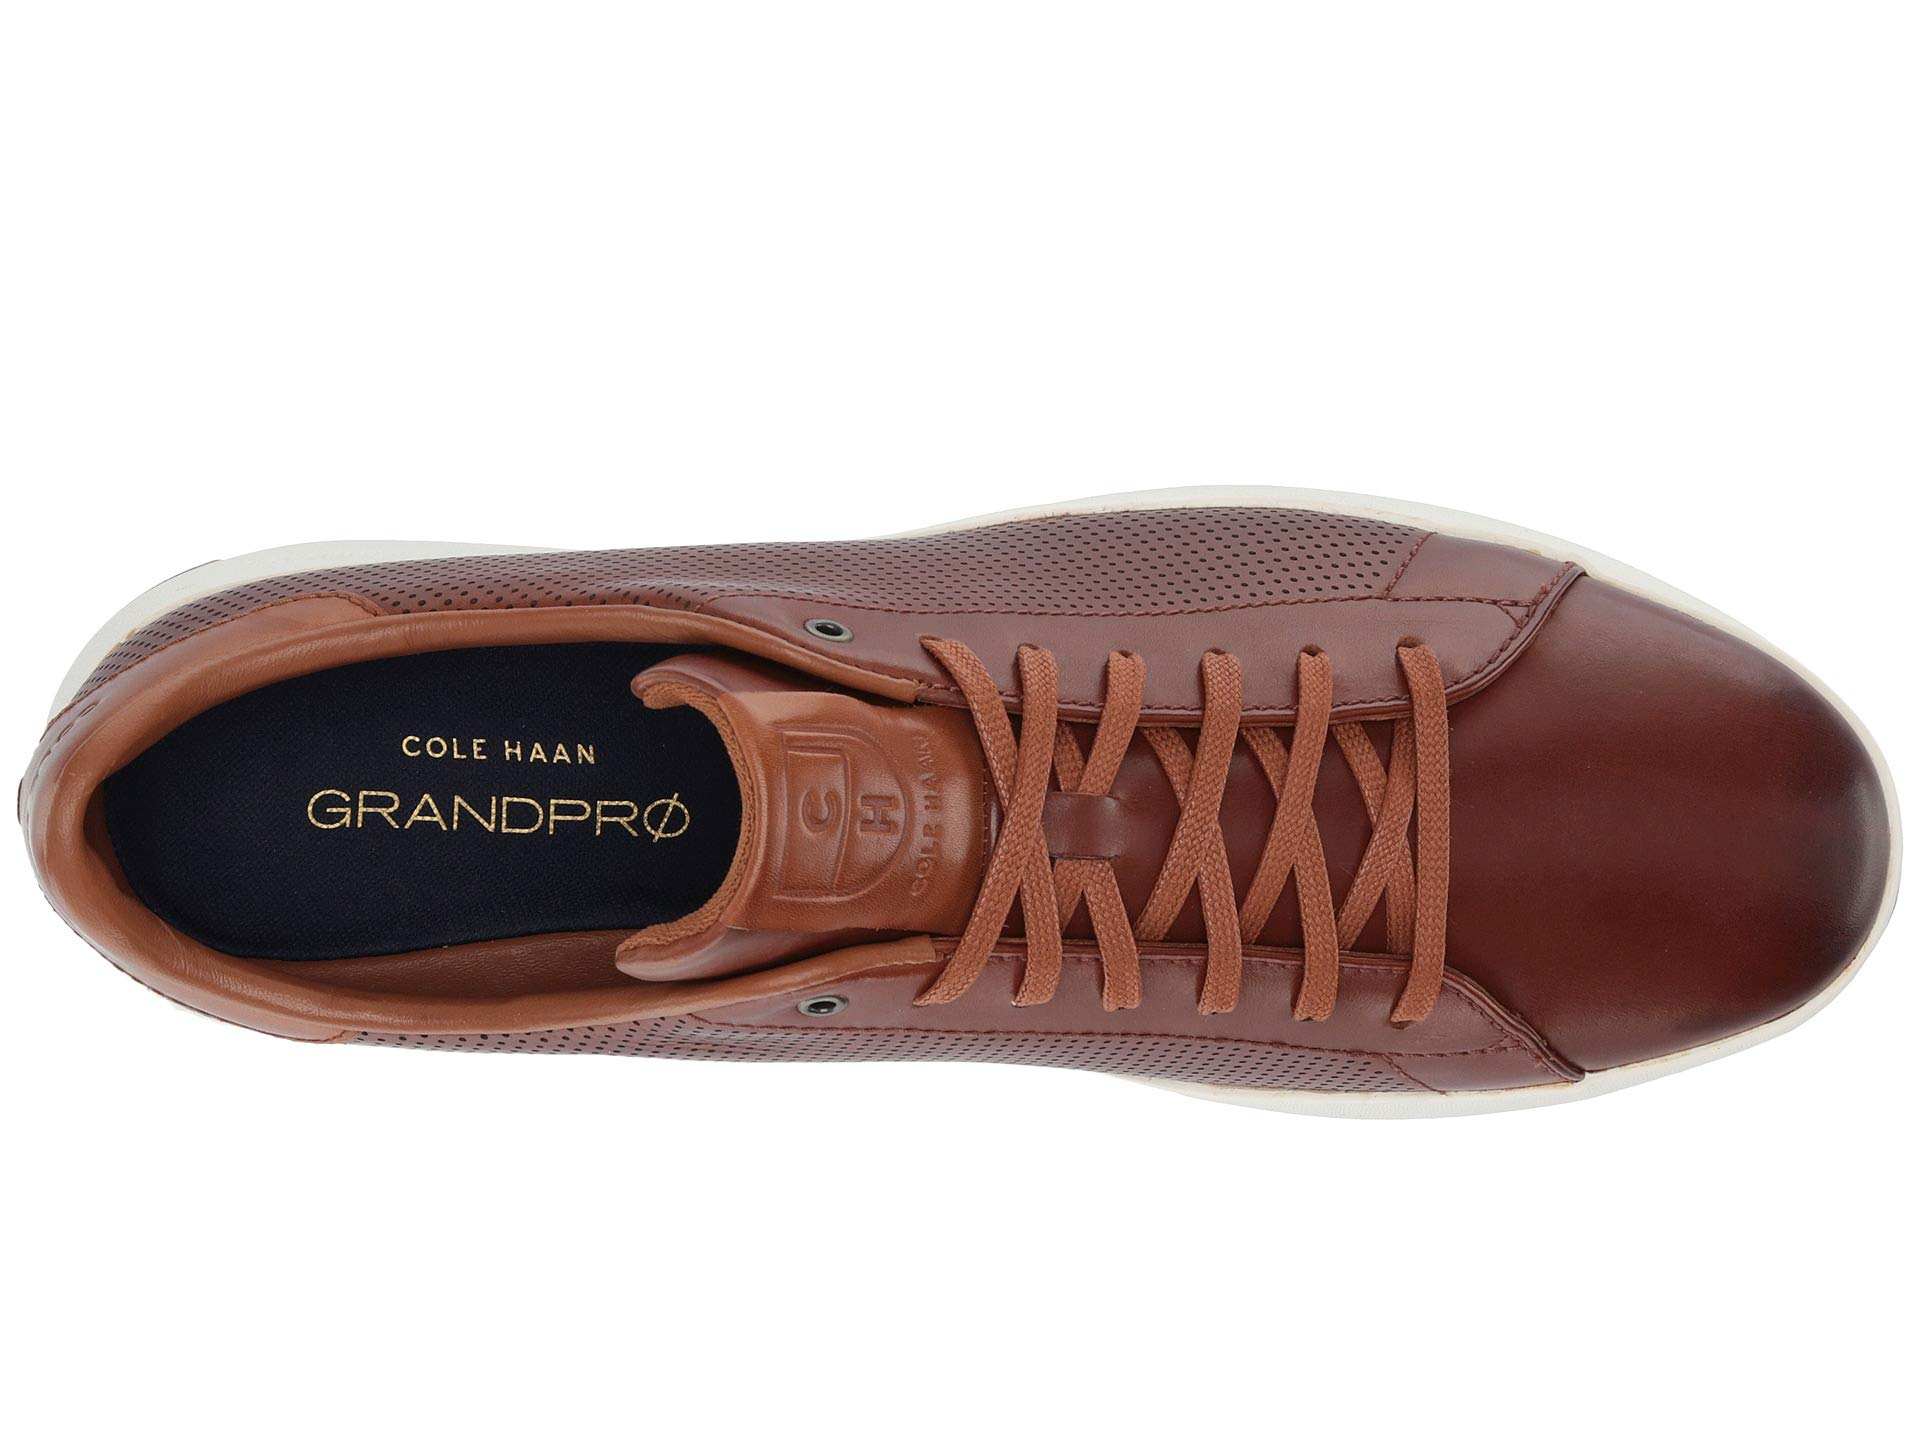 Cole Haan Mens Grandpro Tennis Sneaker 7 Woodbury Handstained Leather by Cole Haan (Image #9)